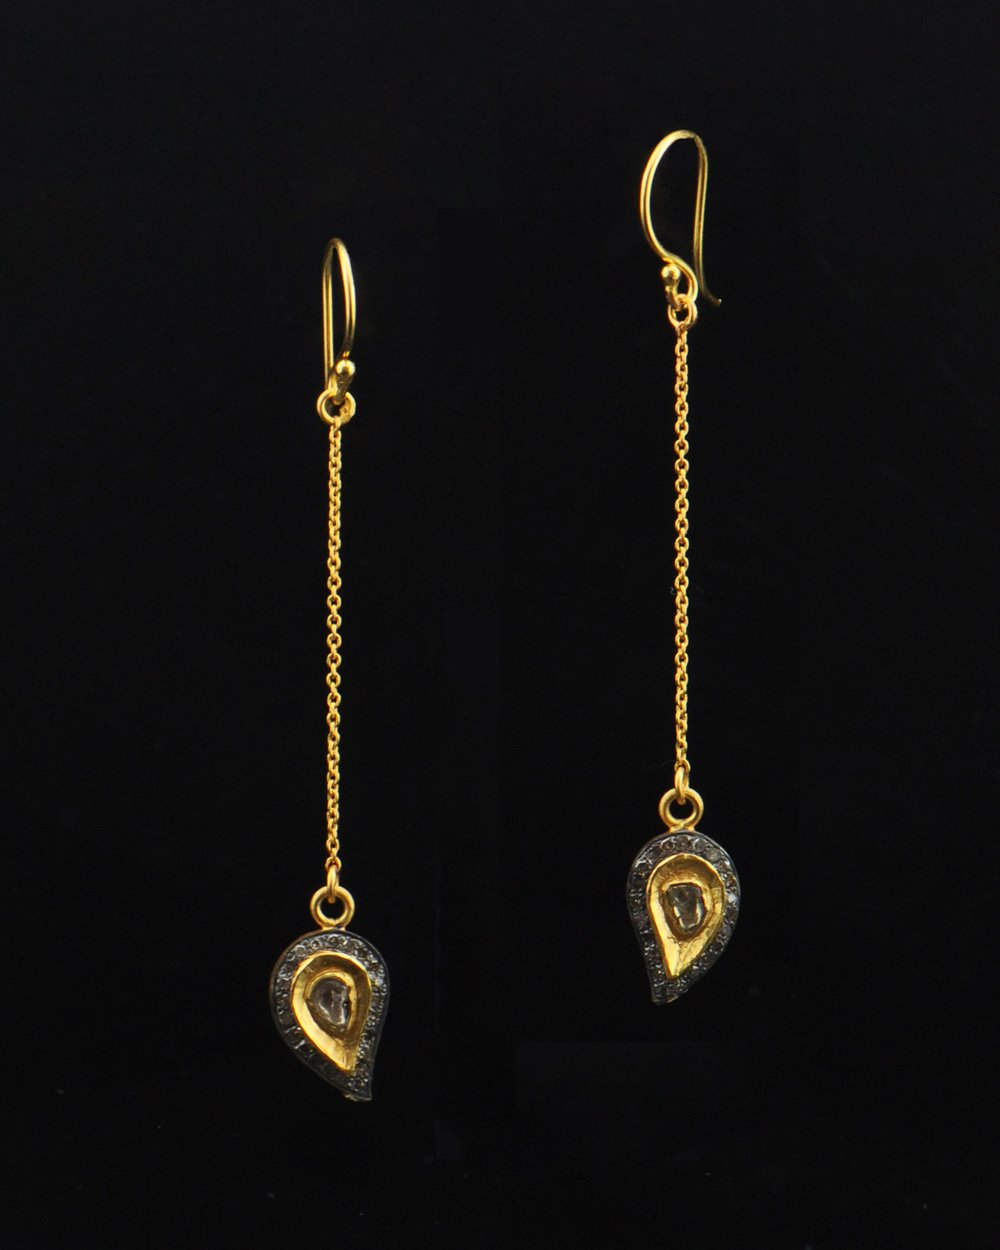 Paisley Diamond Drop Earrings in Gold Vermeil